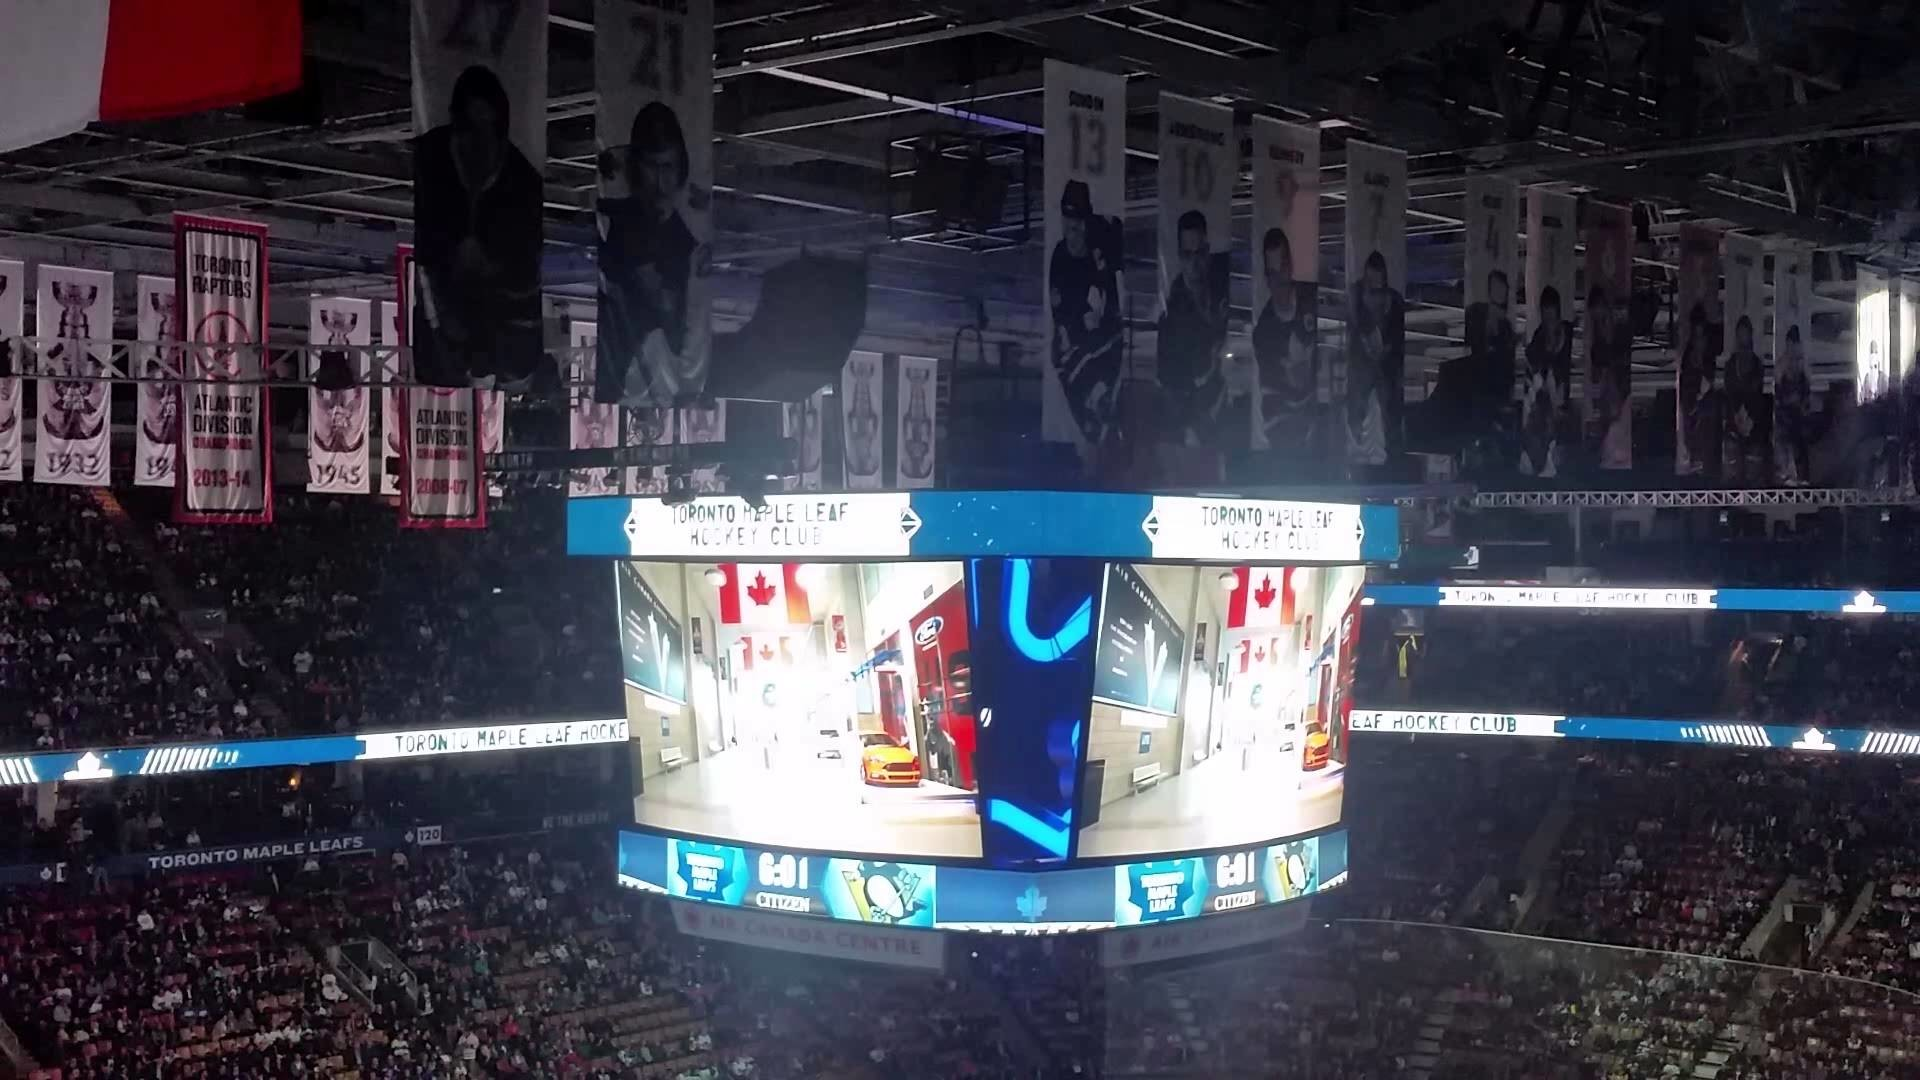 1920x1080 Toronto Maple Leafs light show 2015-10-31 - YouTube